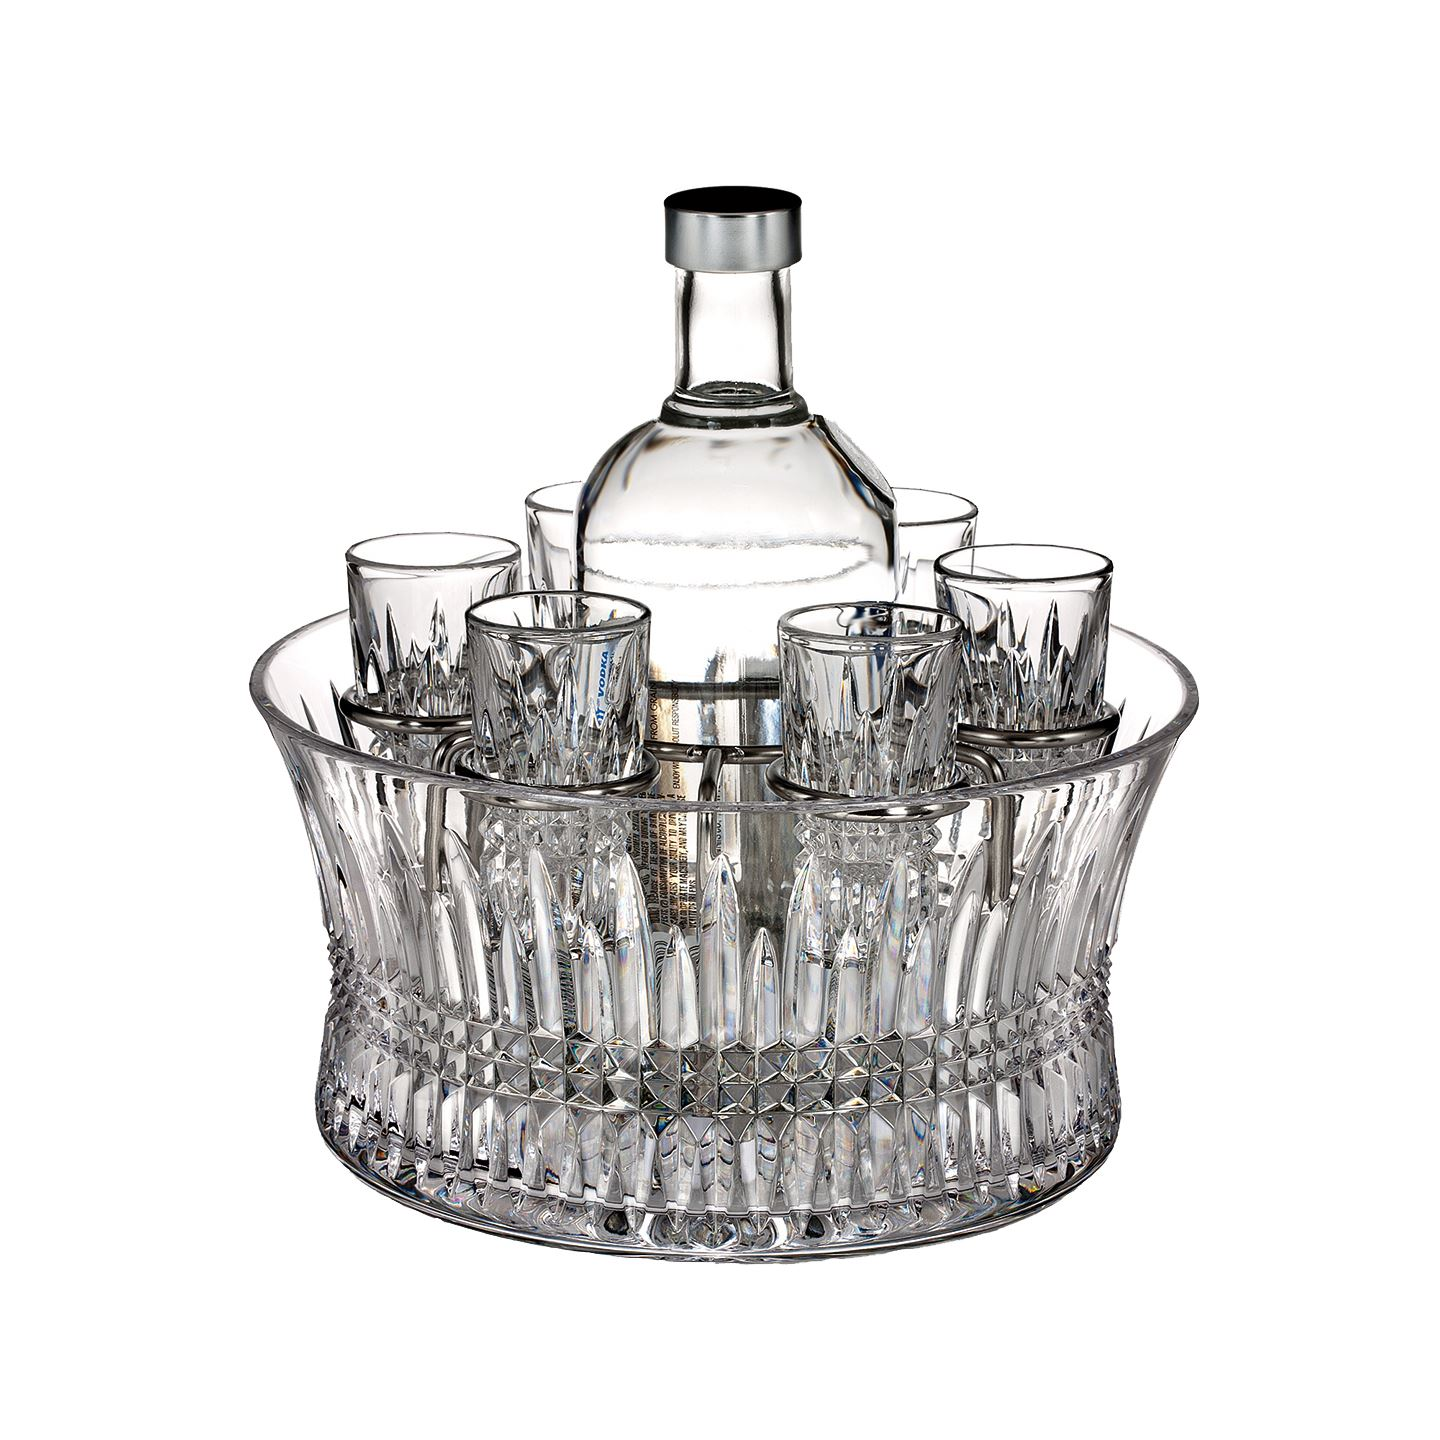 Waterford Lismore Diamond Vodka Set with Chill Bowl, Shot Glasses & Silver Insert | Lead Crystal